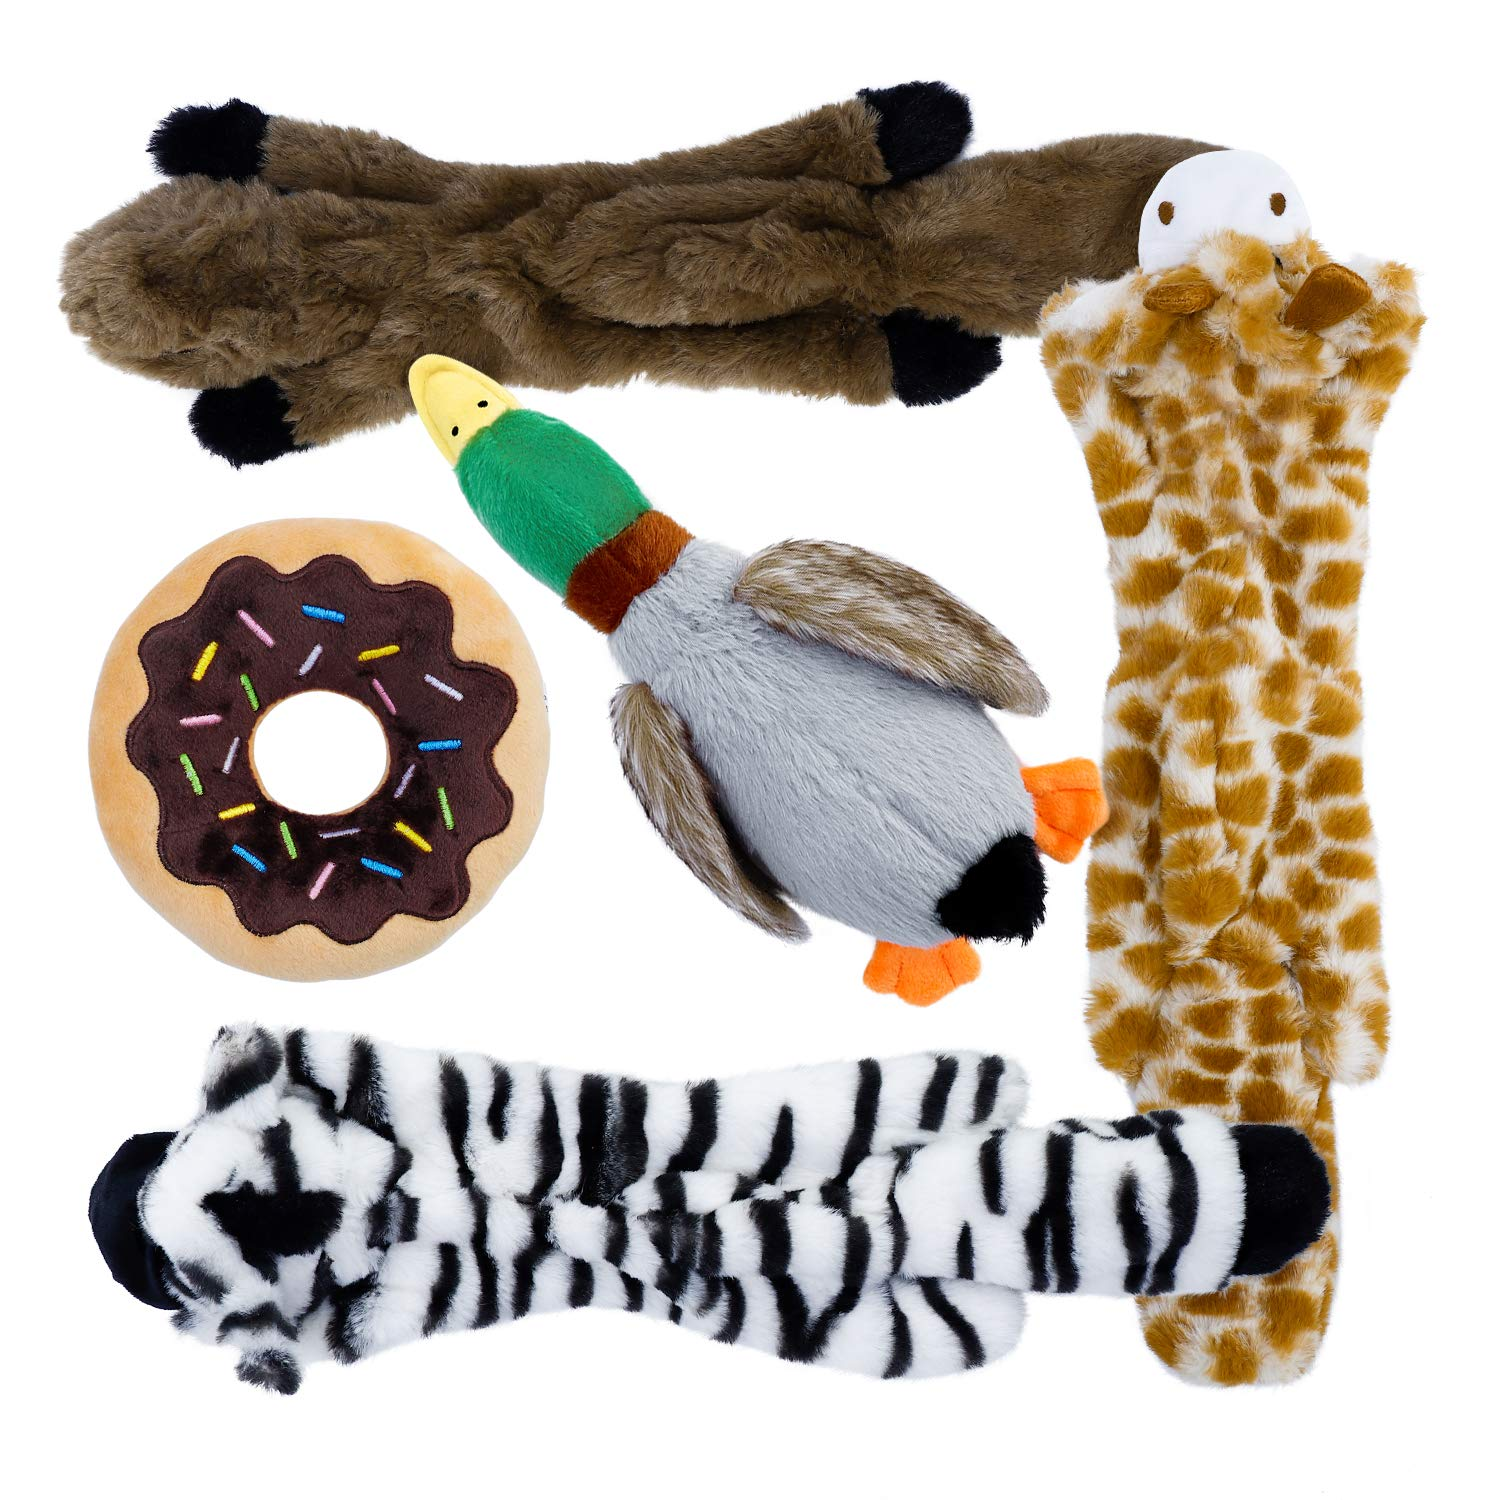 Toozey 5 Pack Dog Squeaky Toys Three no Stuffing Dog Toys and Three Plush Pet Toys with Stuffing - Safe Dog Chew Toys for Small Medium Large by Toozey